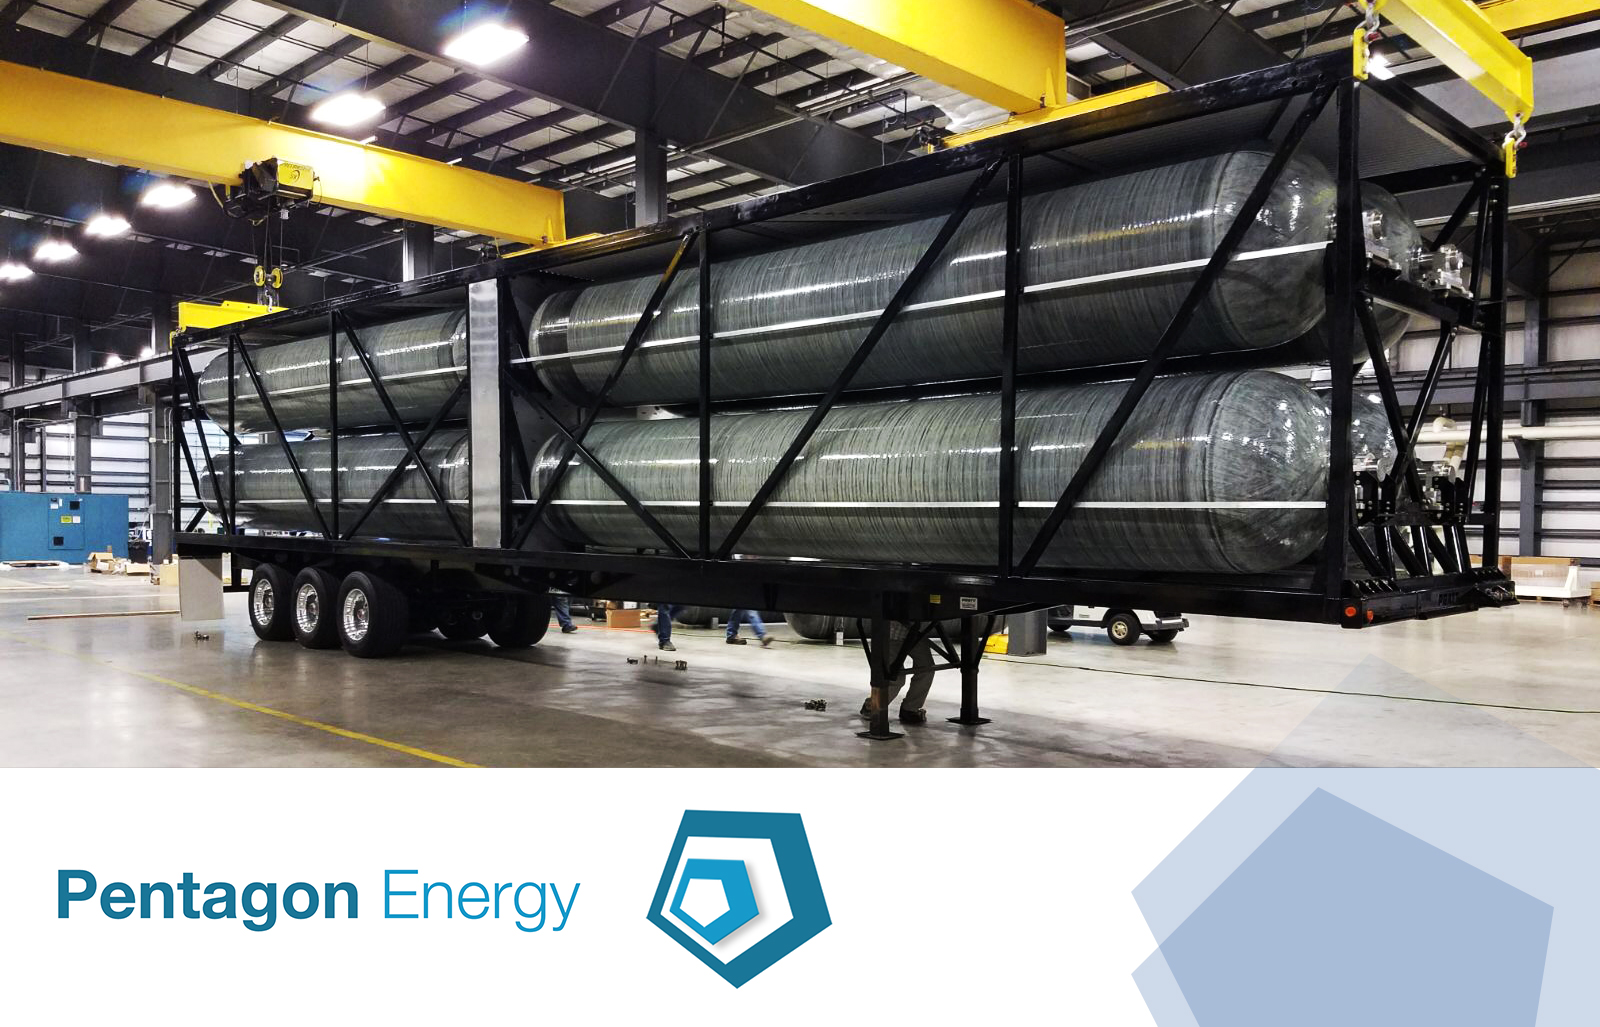 Pentagon Energy Will Deploy The Most Efficient Natural Gas Transportation System In The Market